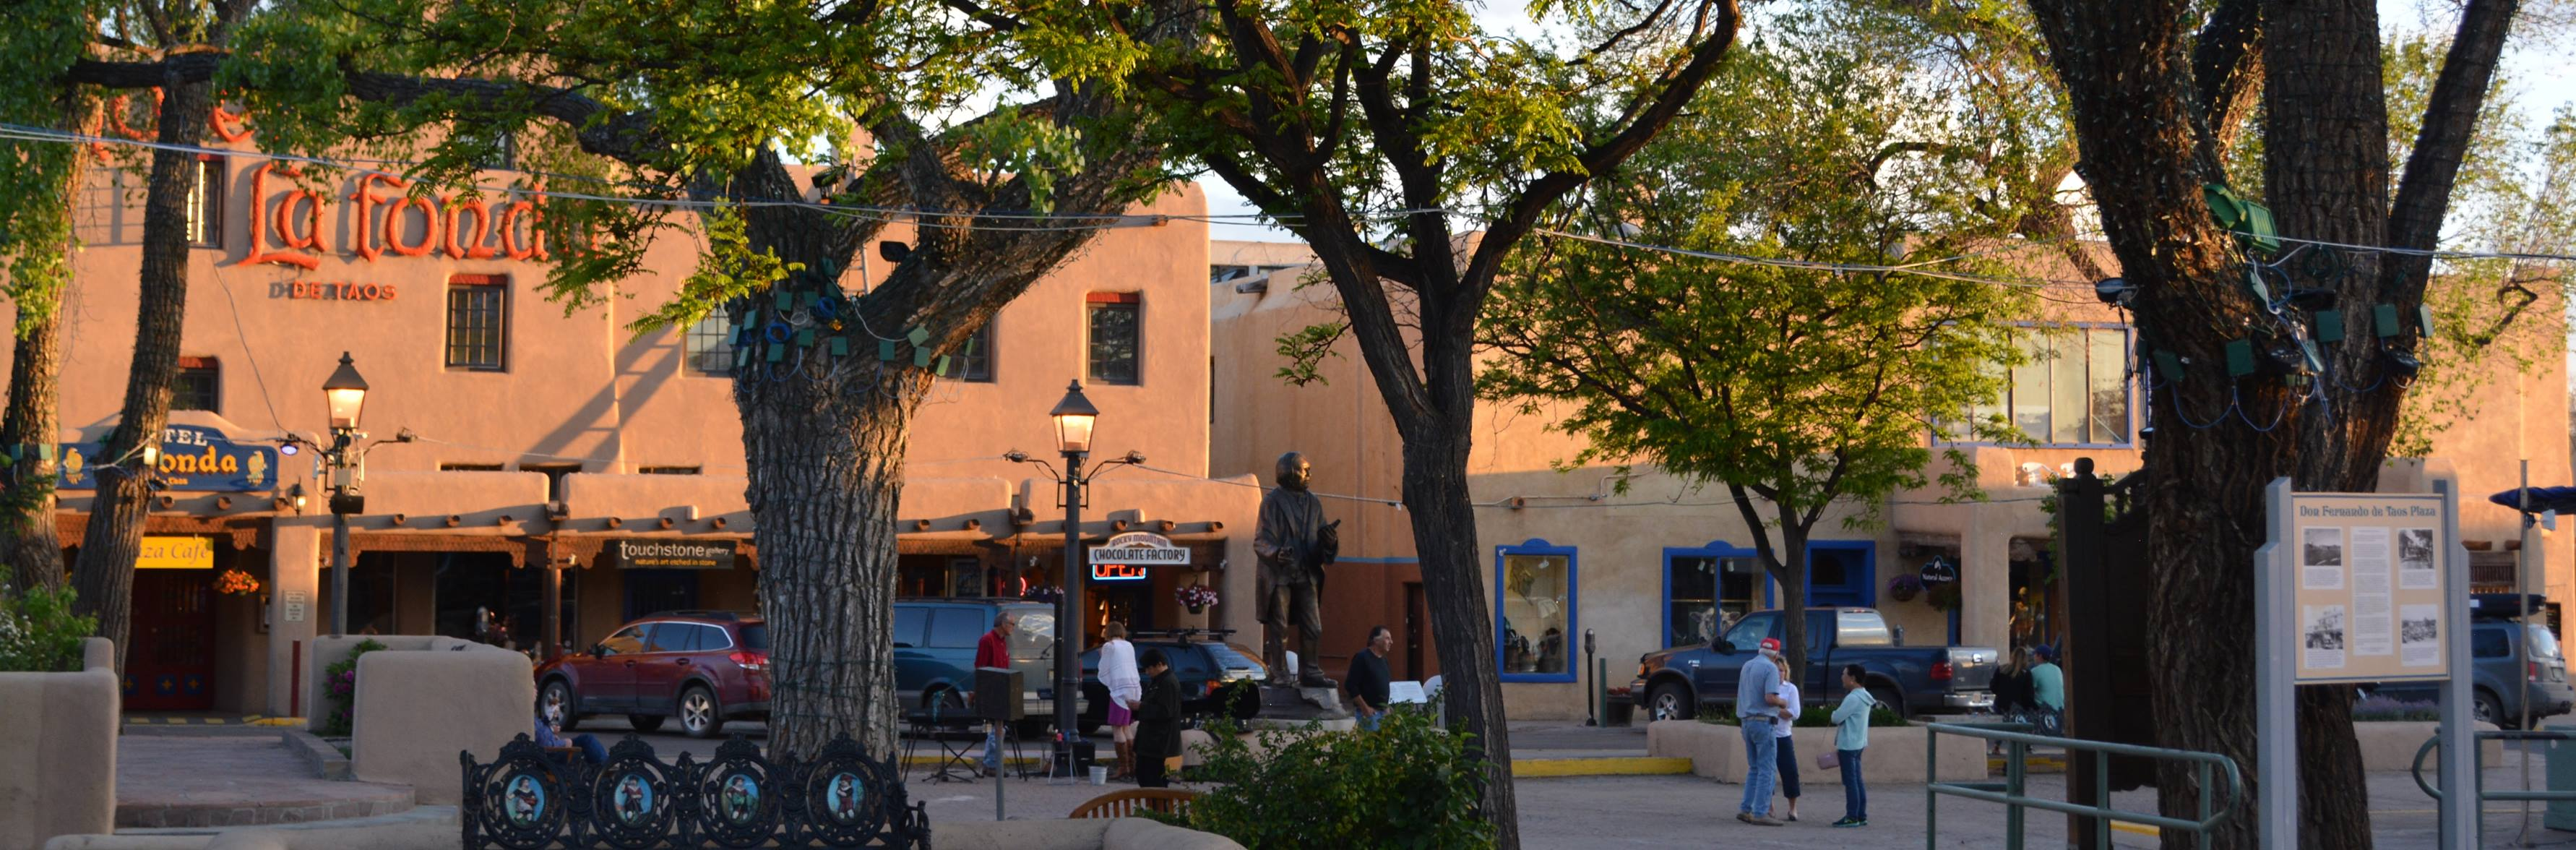 Premiere Properties Vacation Rentals & Property Management in Taos New Mexico